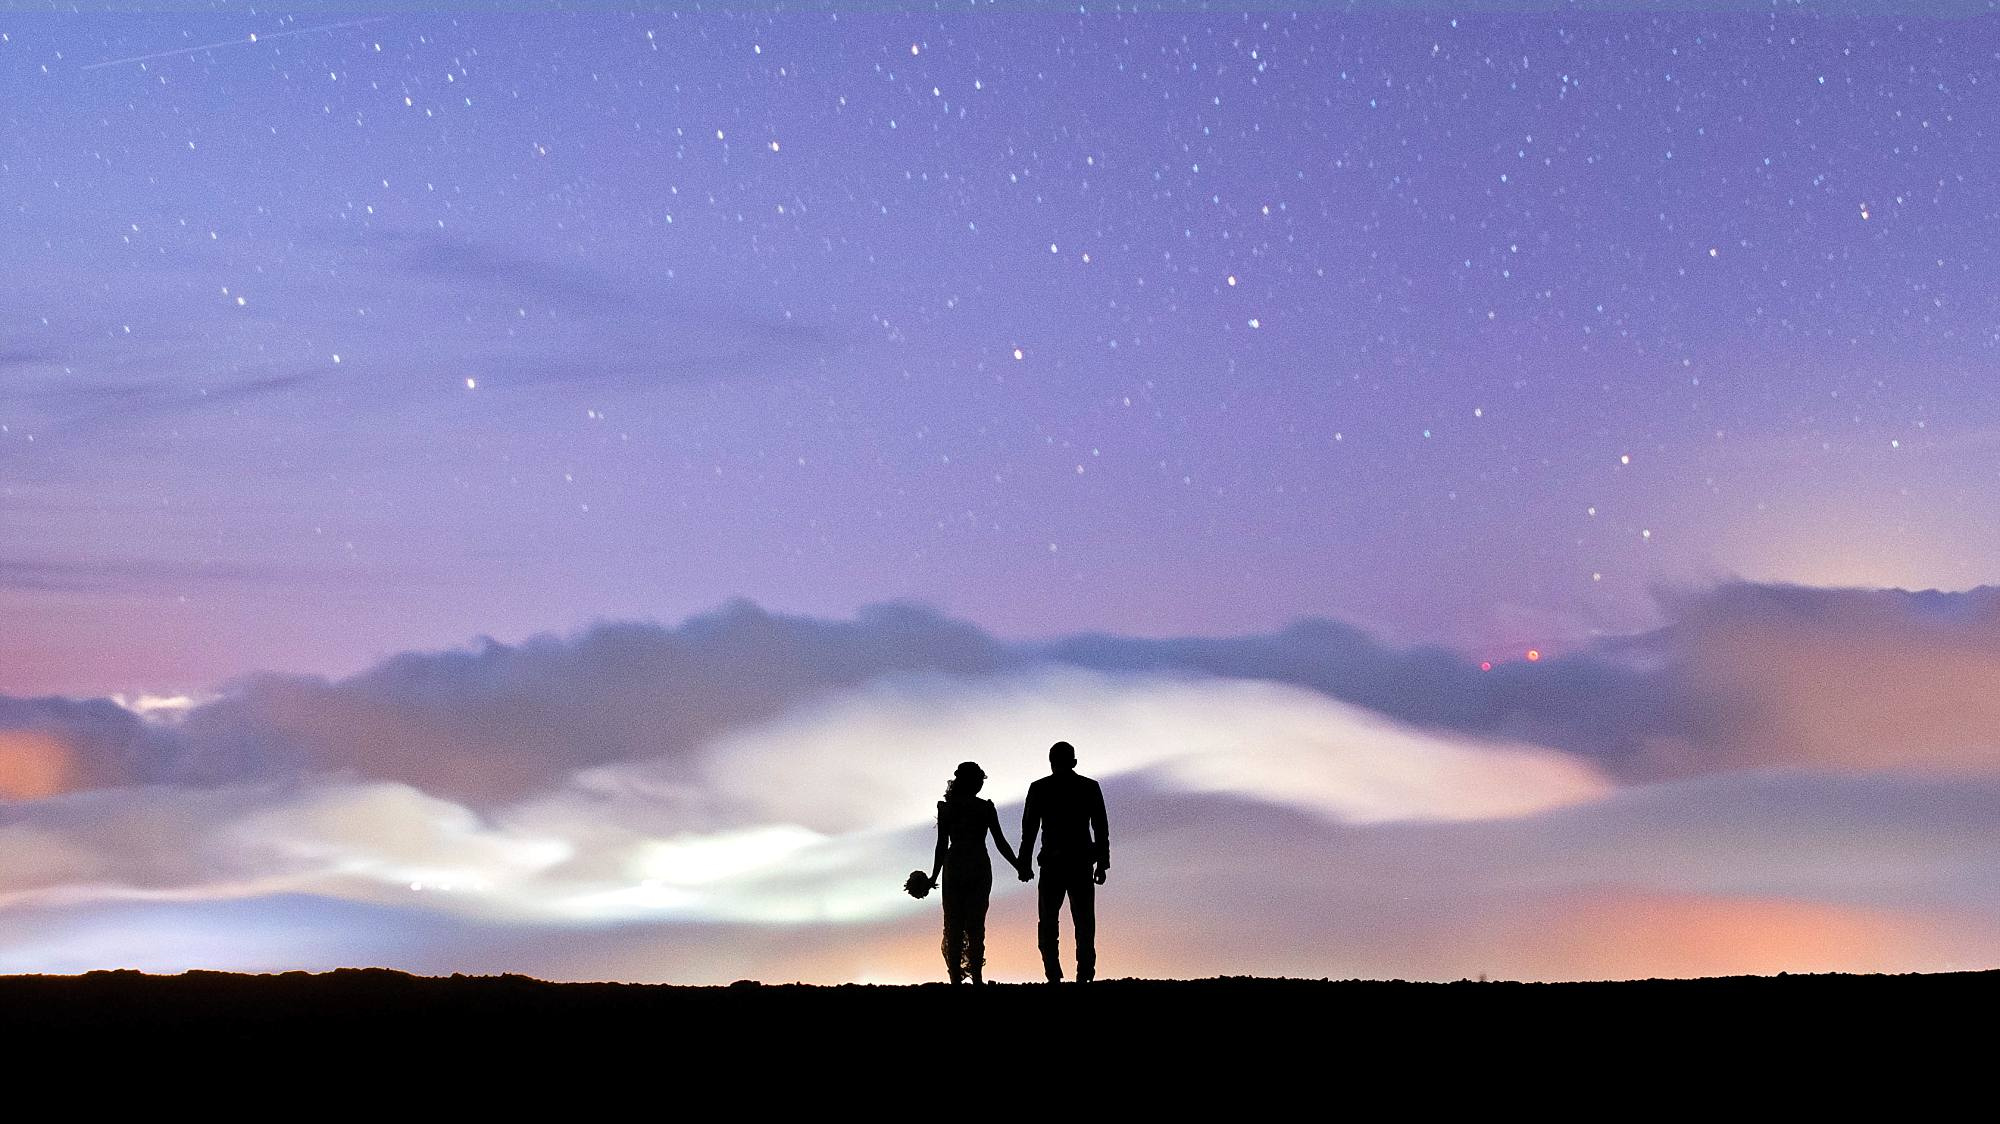 newlyweds silouette against a starry Maui night